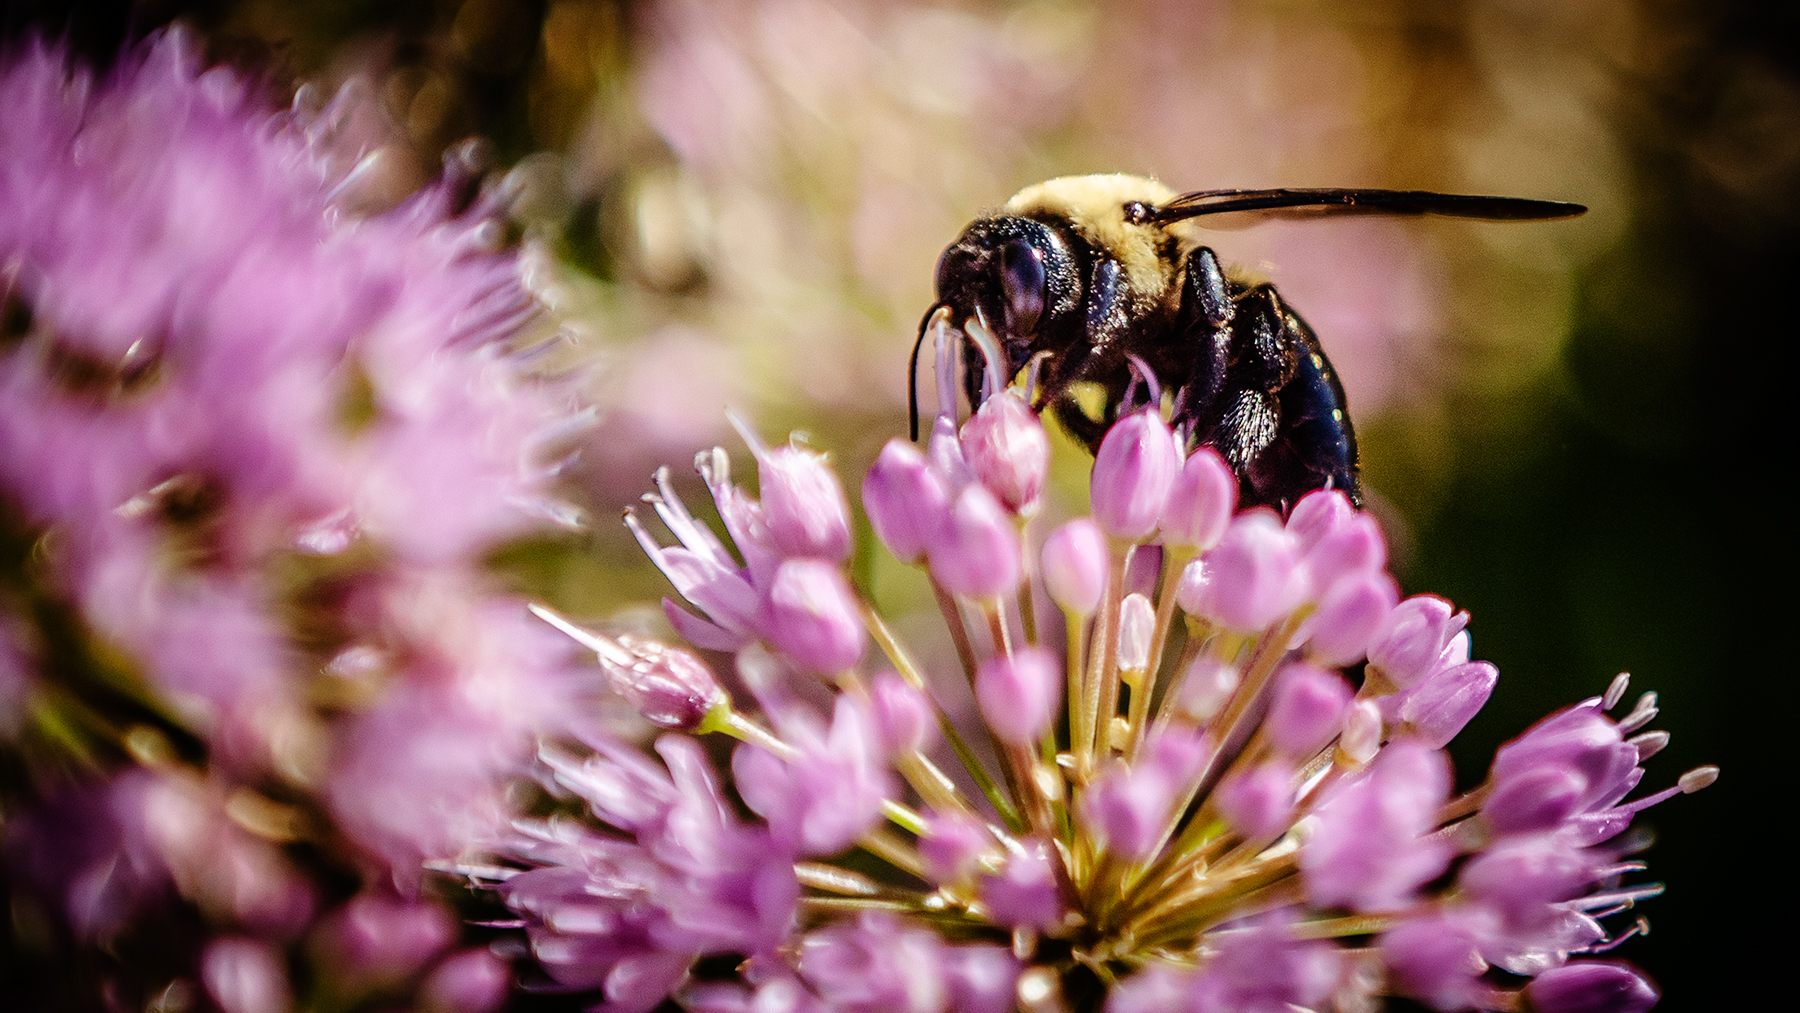 A bumble bee on the Illinois campus last summer. Photo by L. Brian Stauffer